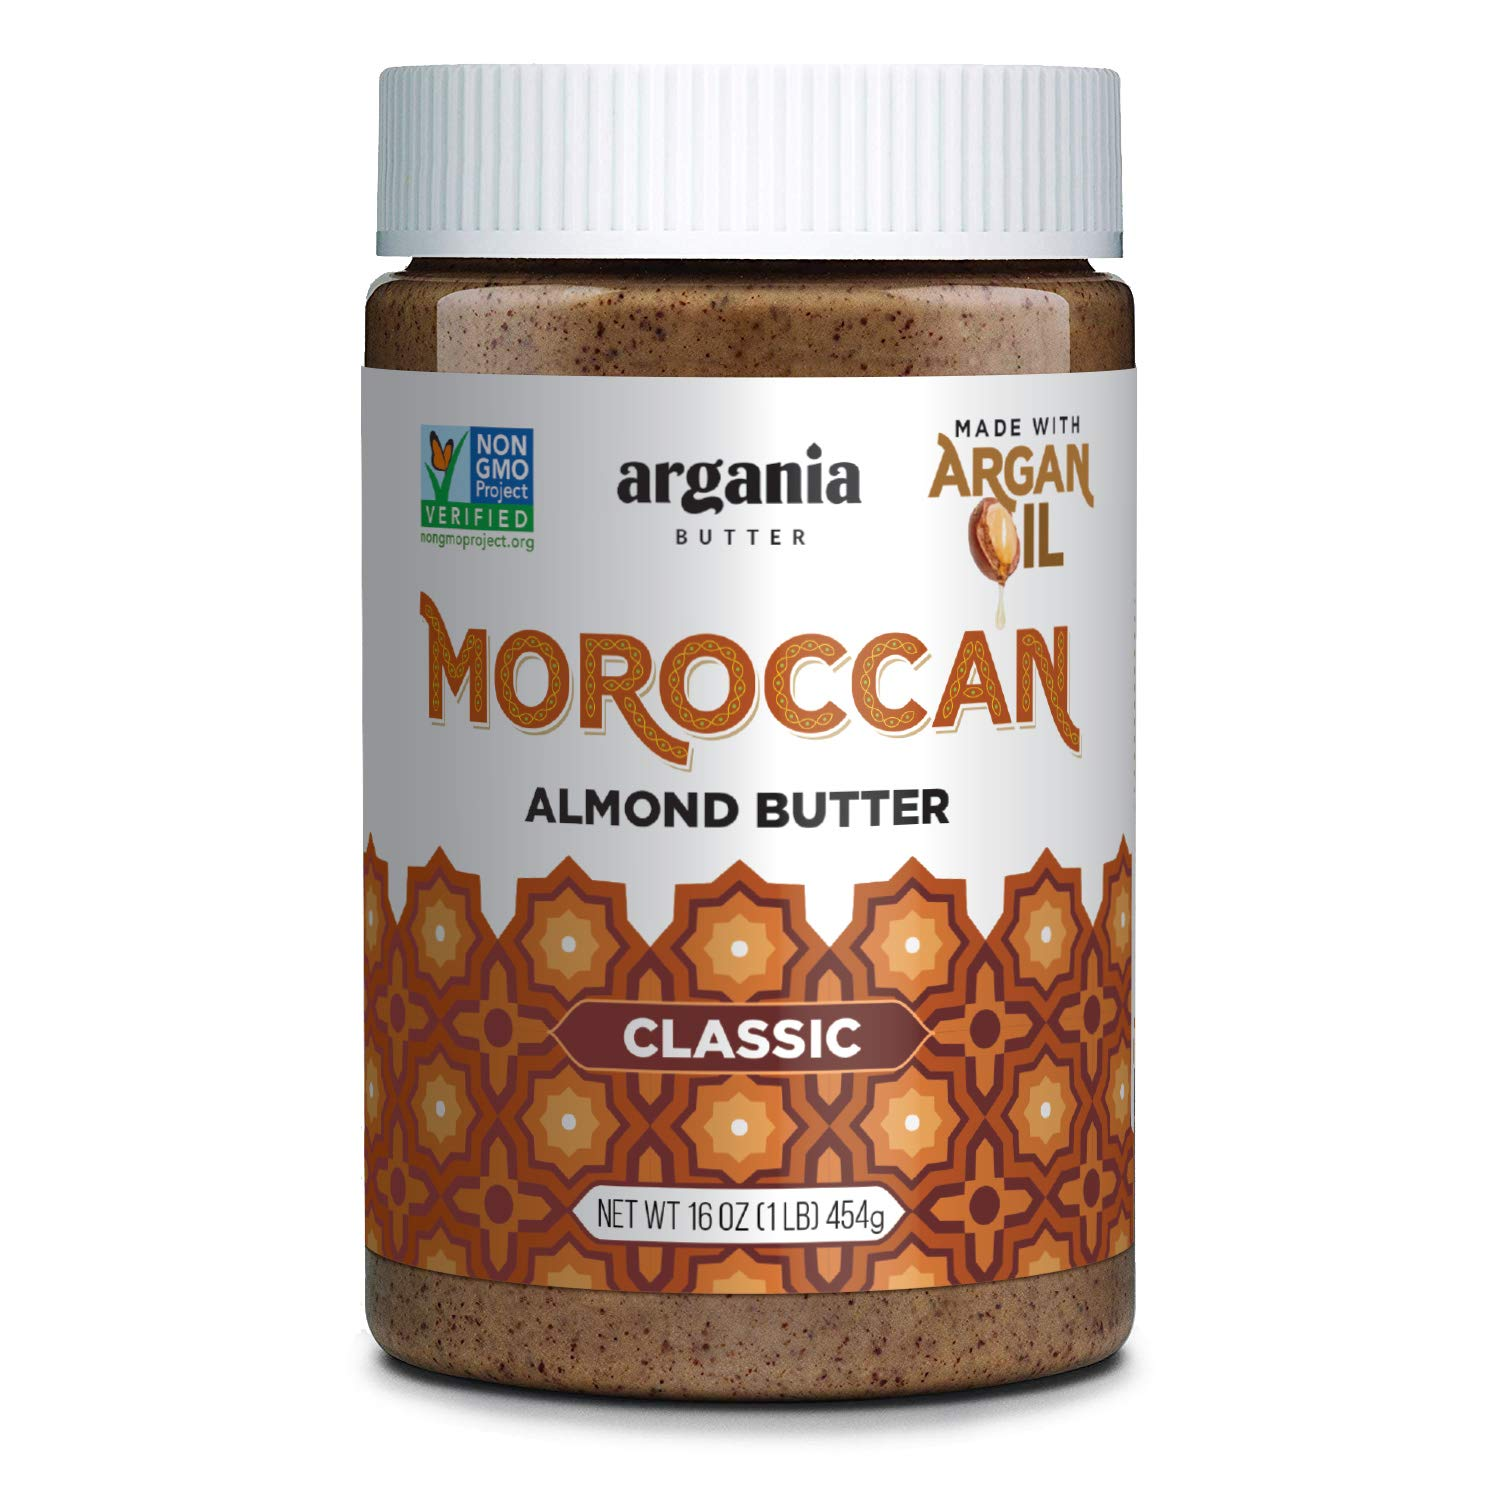 Argania Butter Classic Almond Butter With Superfood Organic Edible Argan Oil - Vegan , Kosher, Non GMO, No Palm Oil, No Peanuts, Keto Friendly, Low Carb. 16 Ounces (Classic Almond Butter)